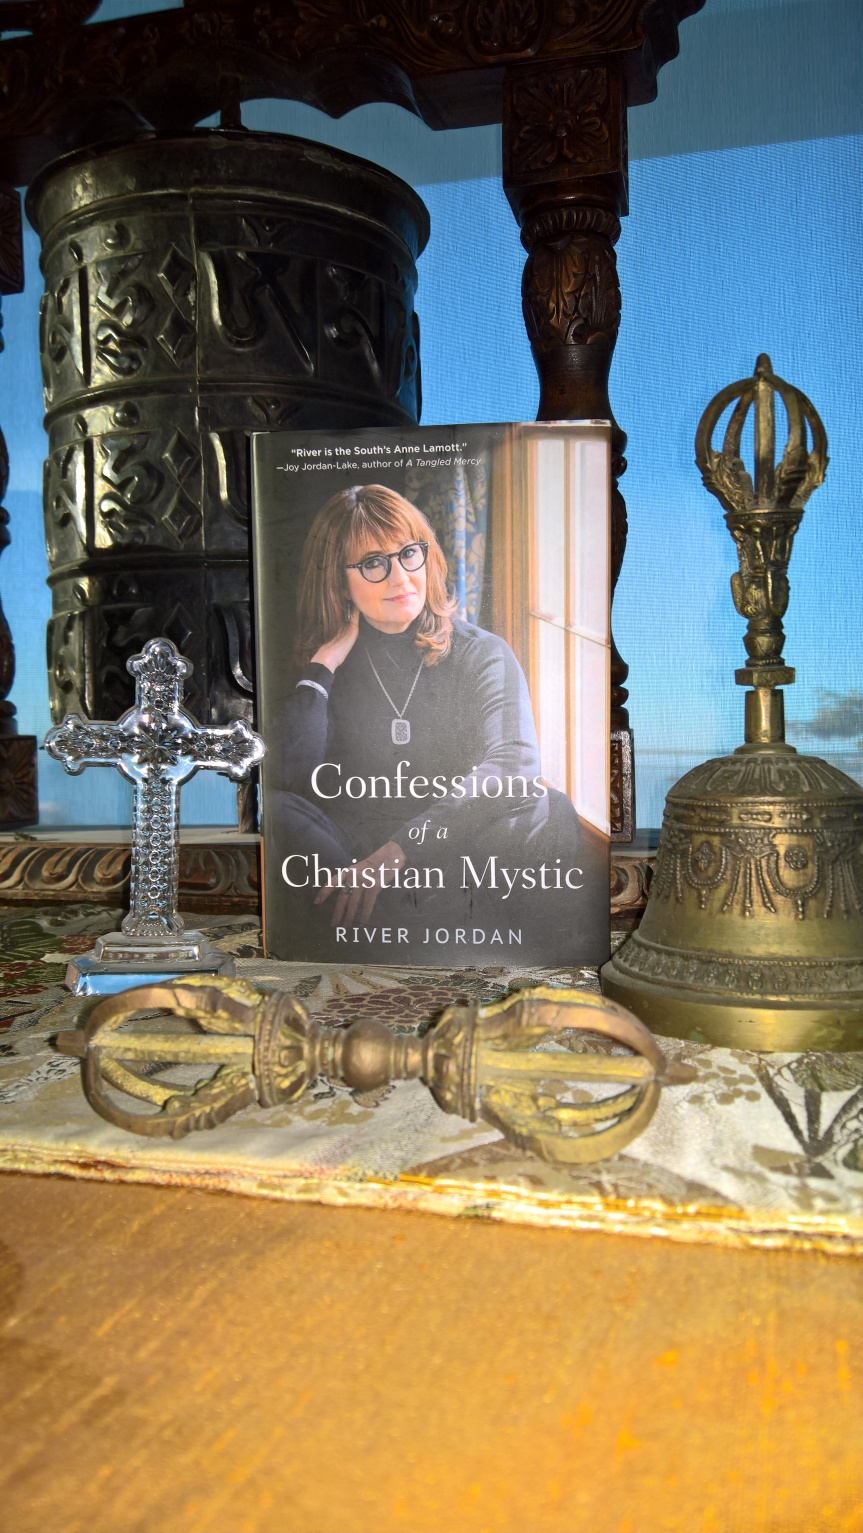 Confessions of a Christian Mystic by RiverJordan